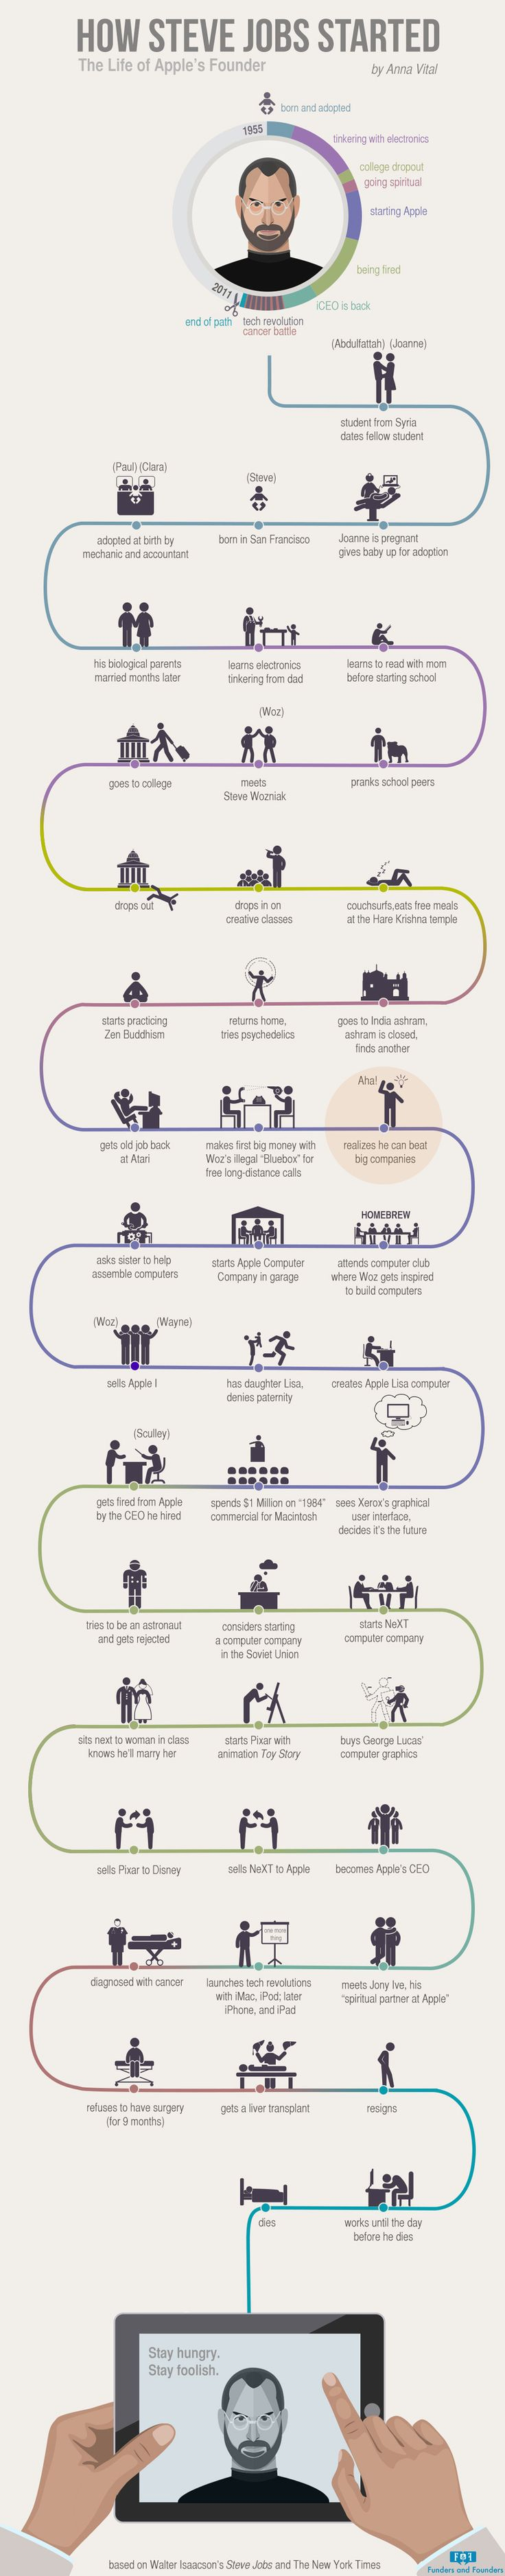 Steve Jobs' Long and Winding Startup Path - Inc.com | Infographic